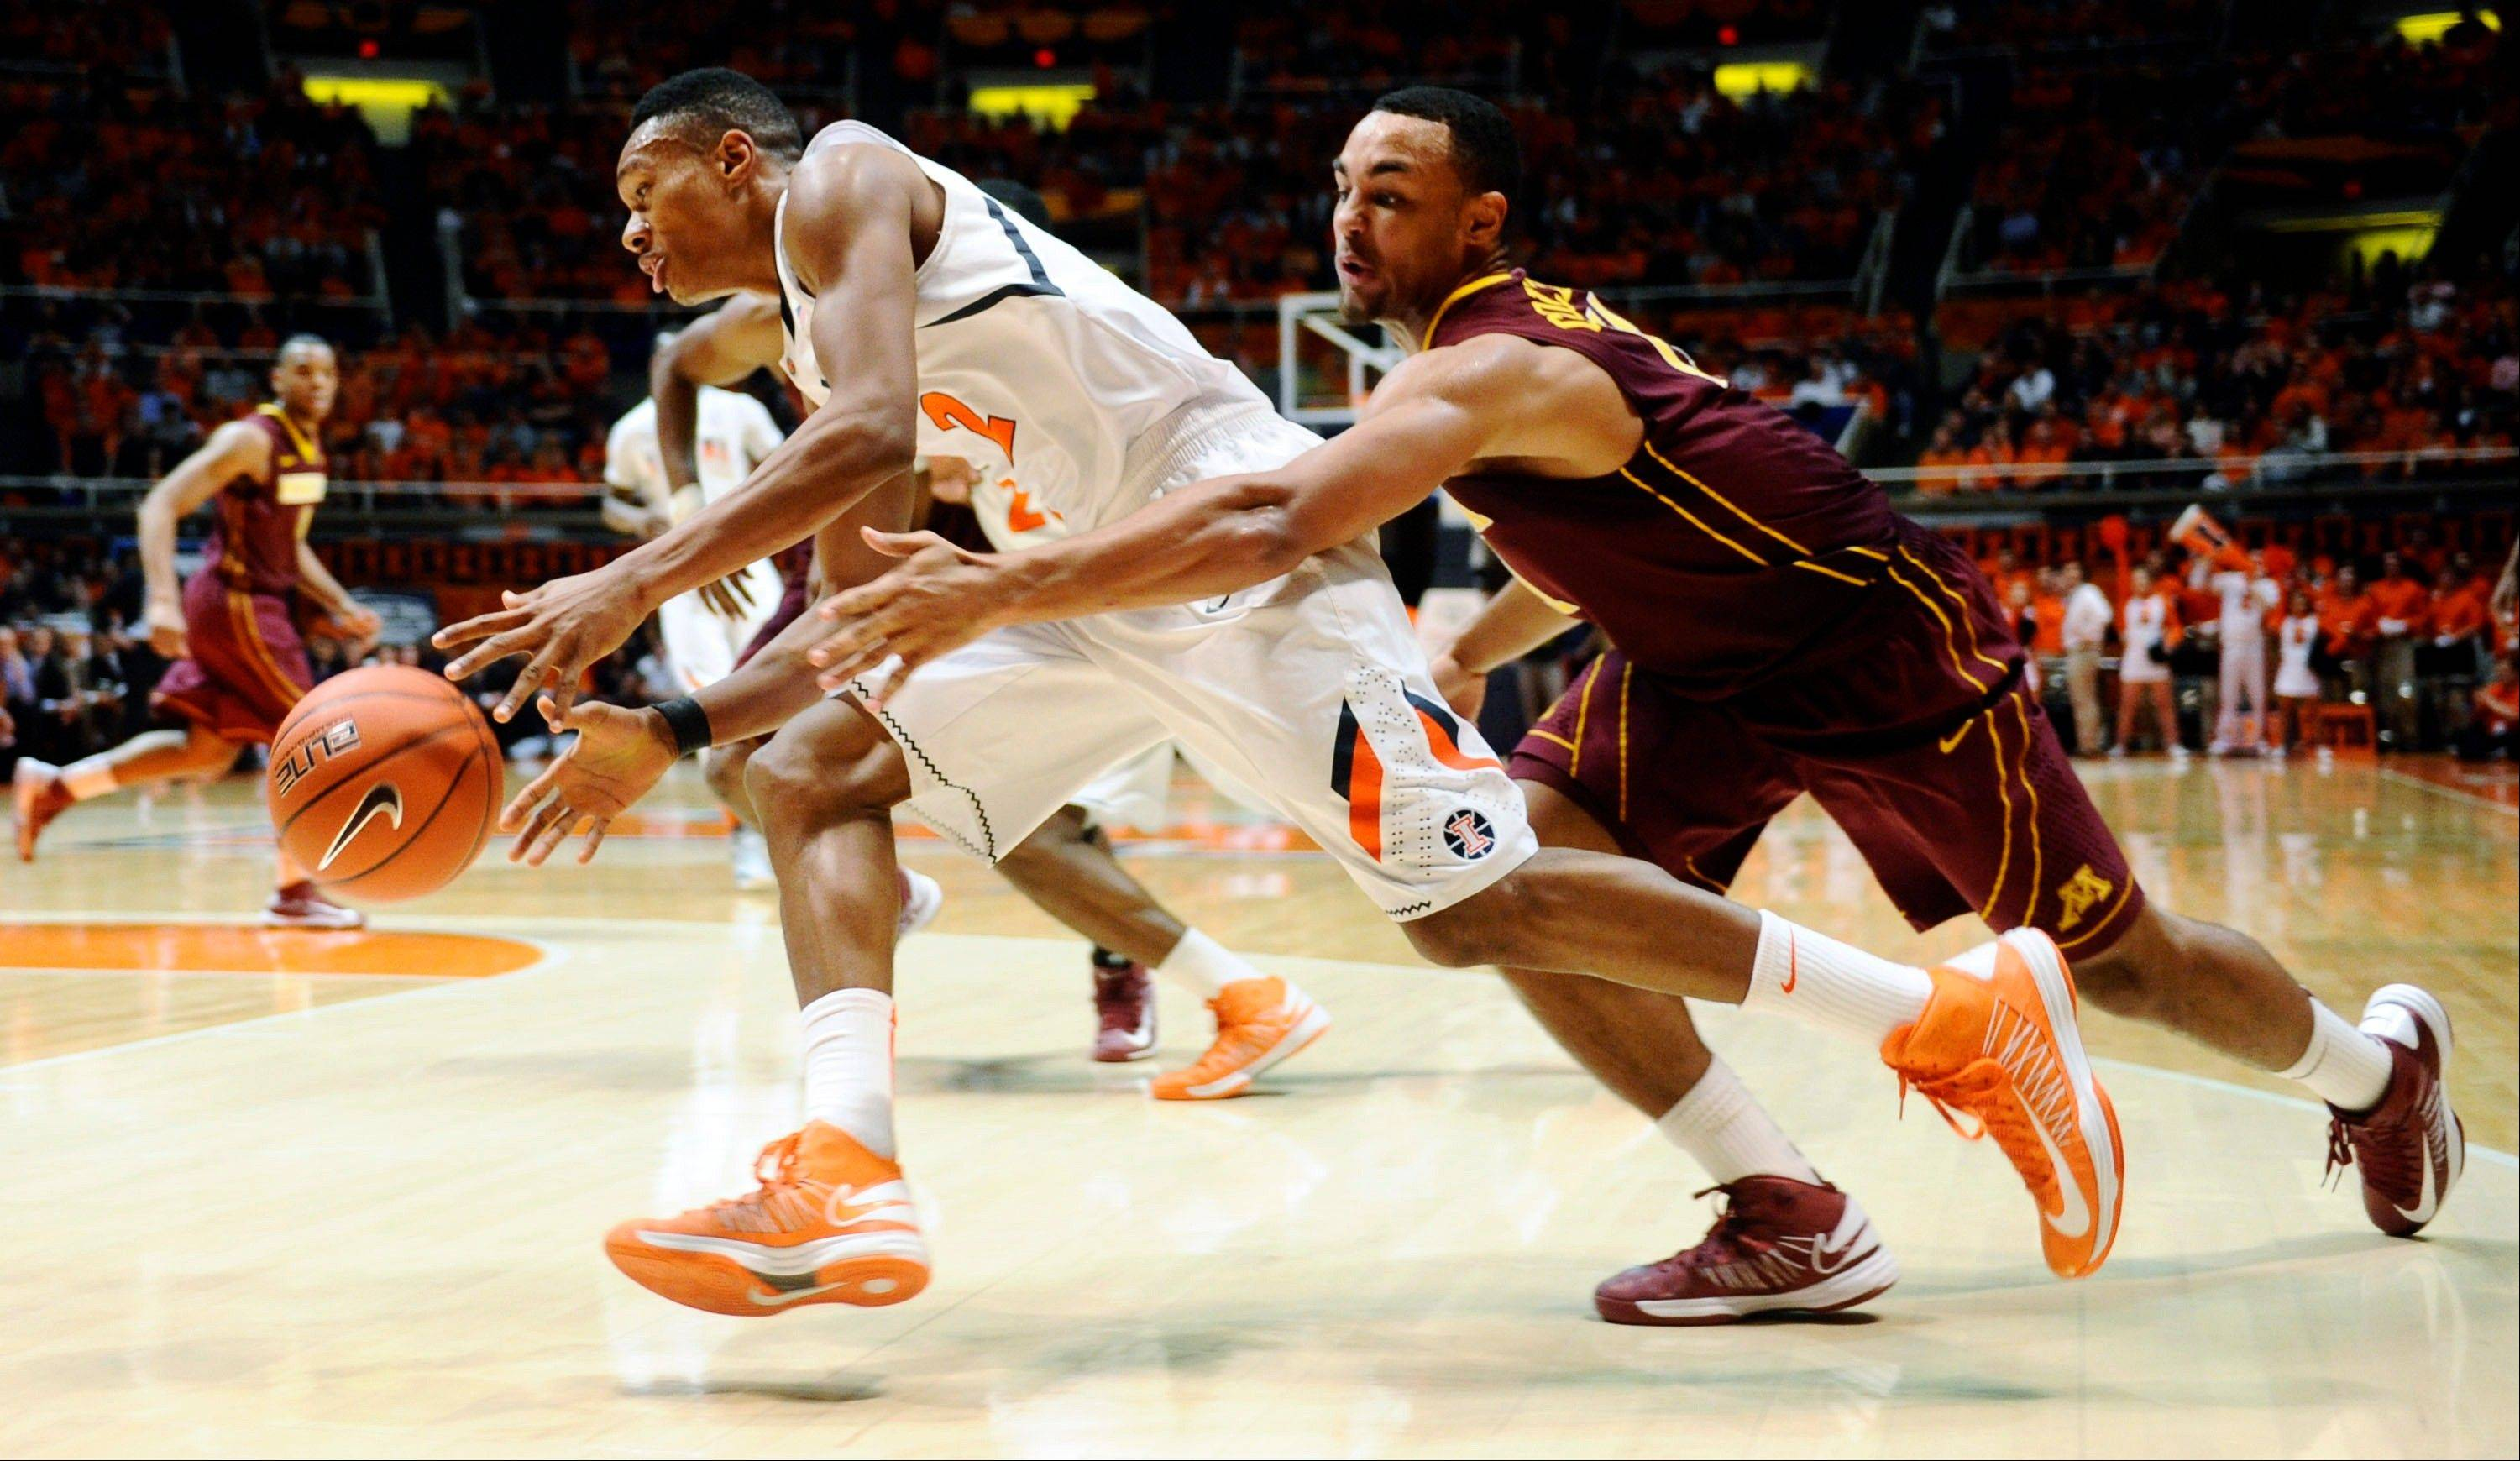 Illinois guard Joseph Bertrand (2) drives under pressure from Minnesota guard Joe Coleman (11) during their NCAA college basketball game Wednesday in Champaign, Ill.